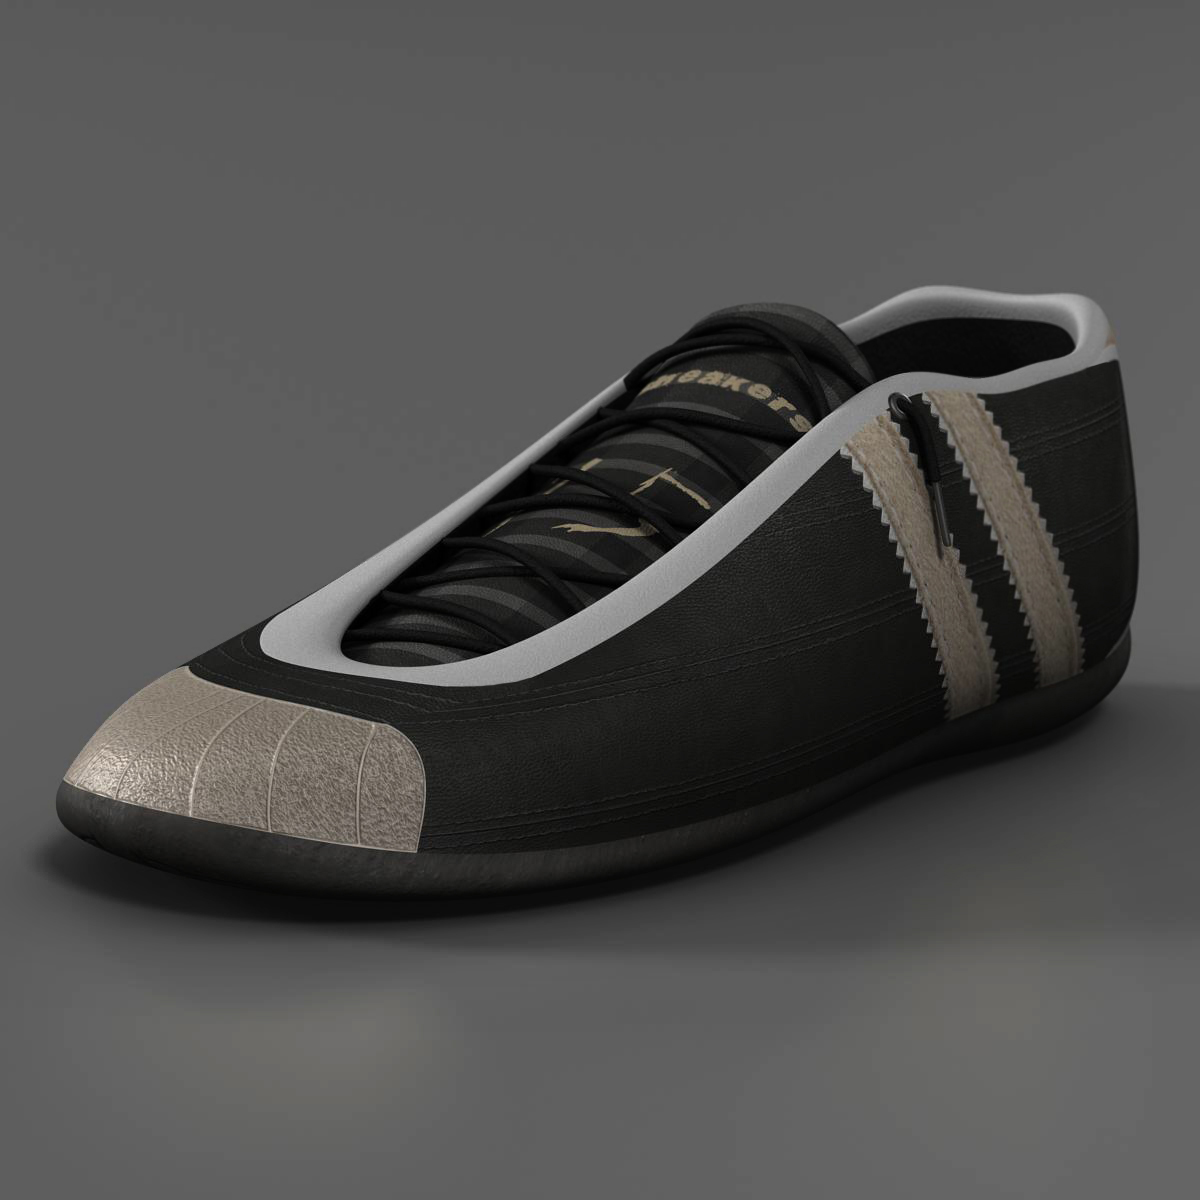 sneaker 3d model 3ds max fbx c4d mb mb 160383